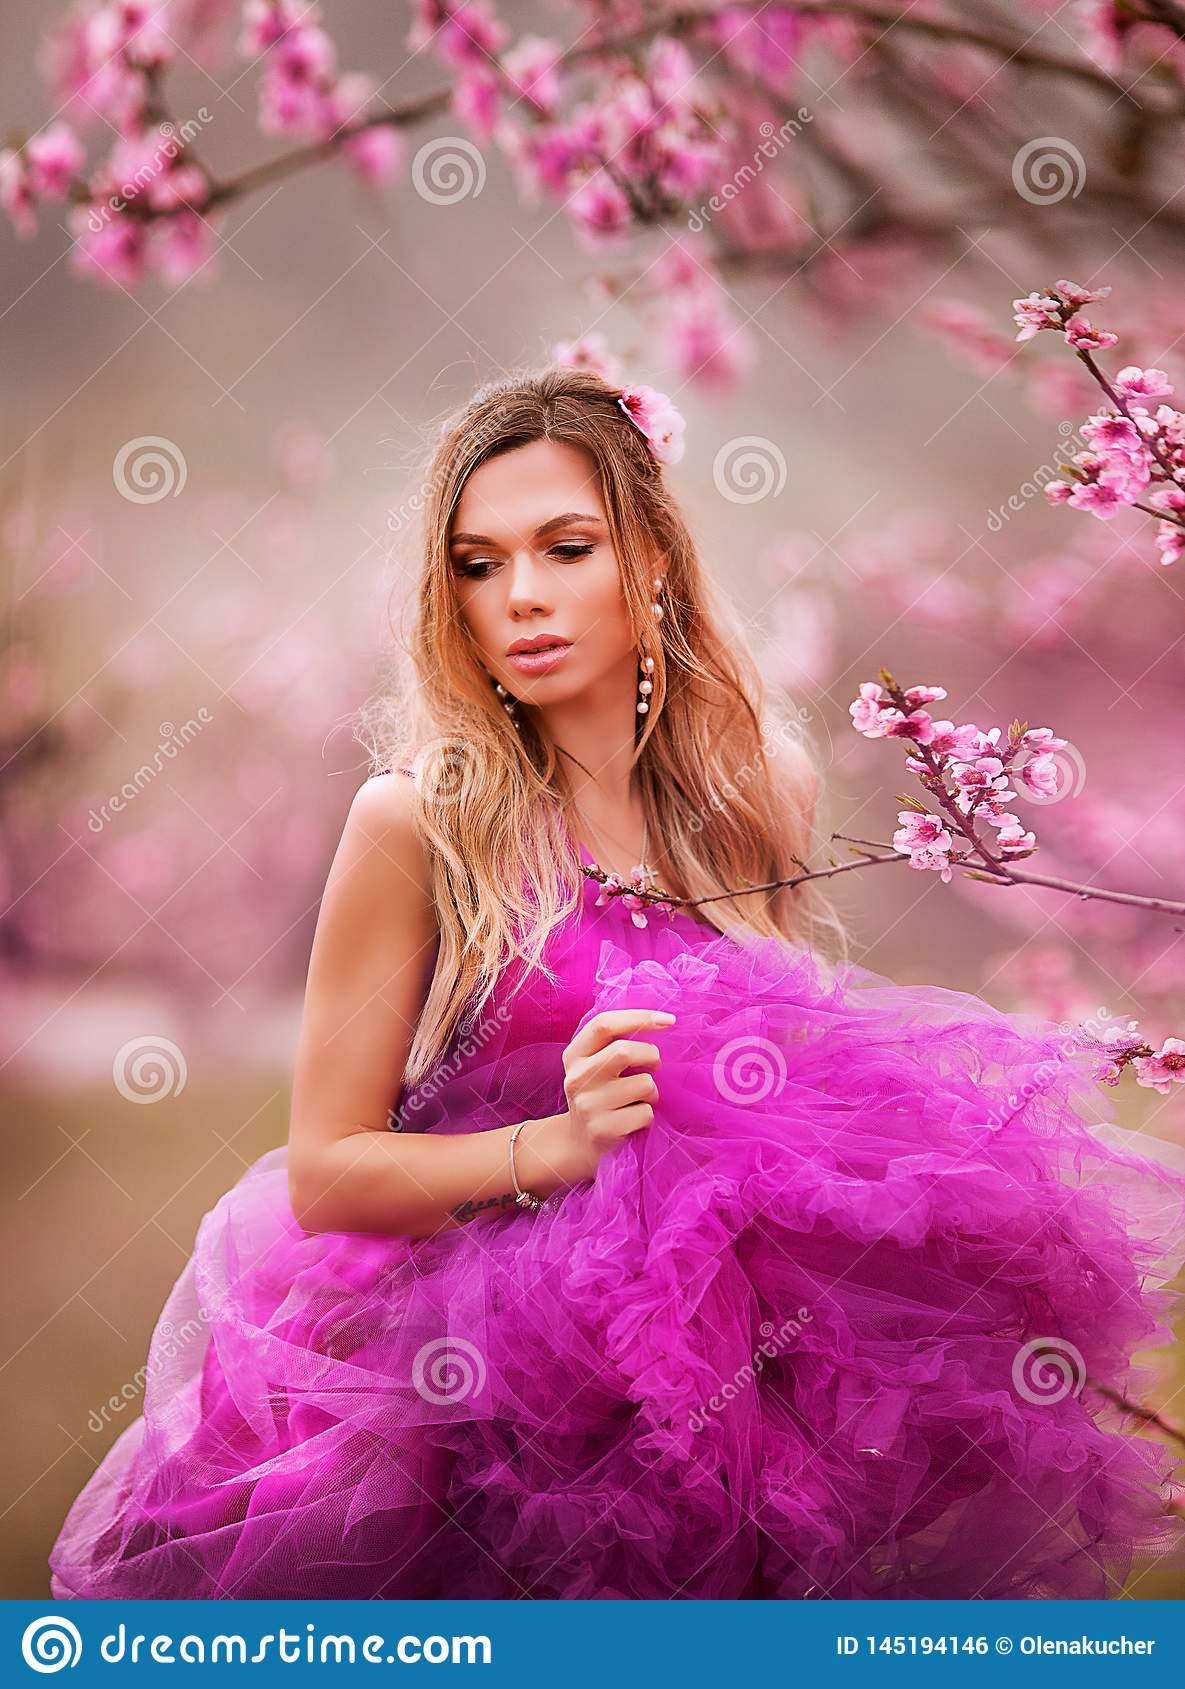 Girl in pink dress in blooming gardens